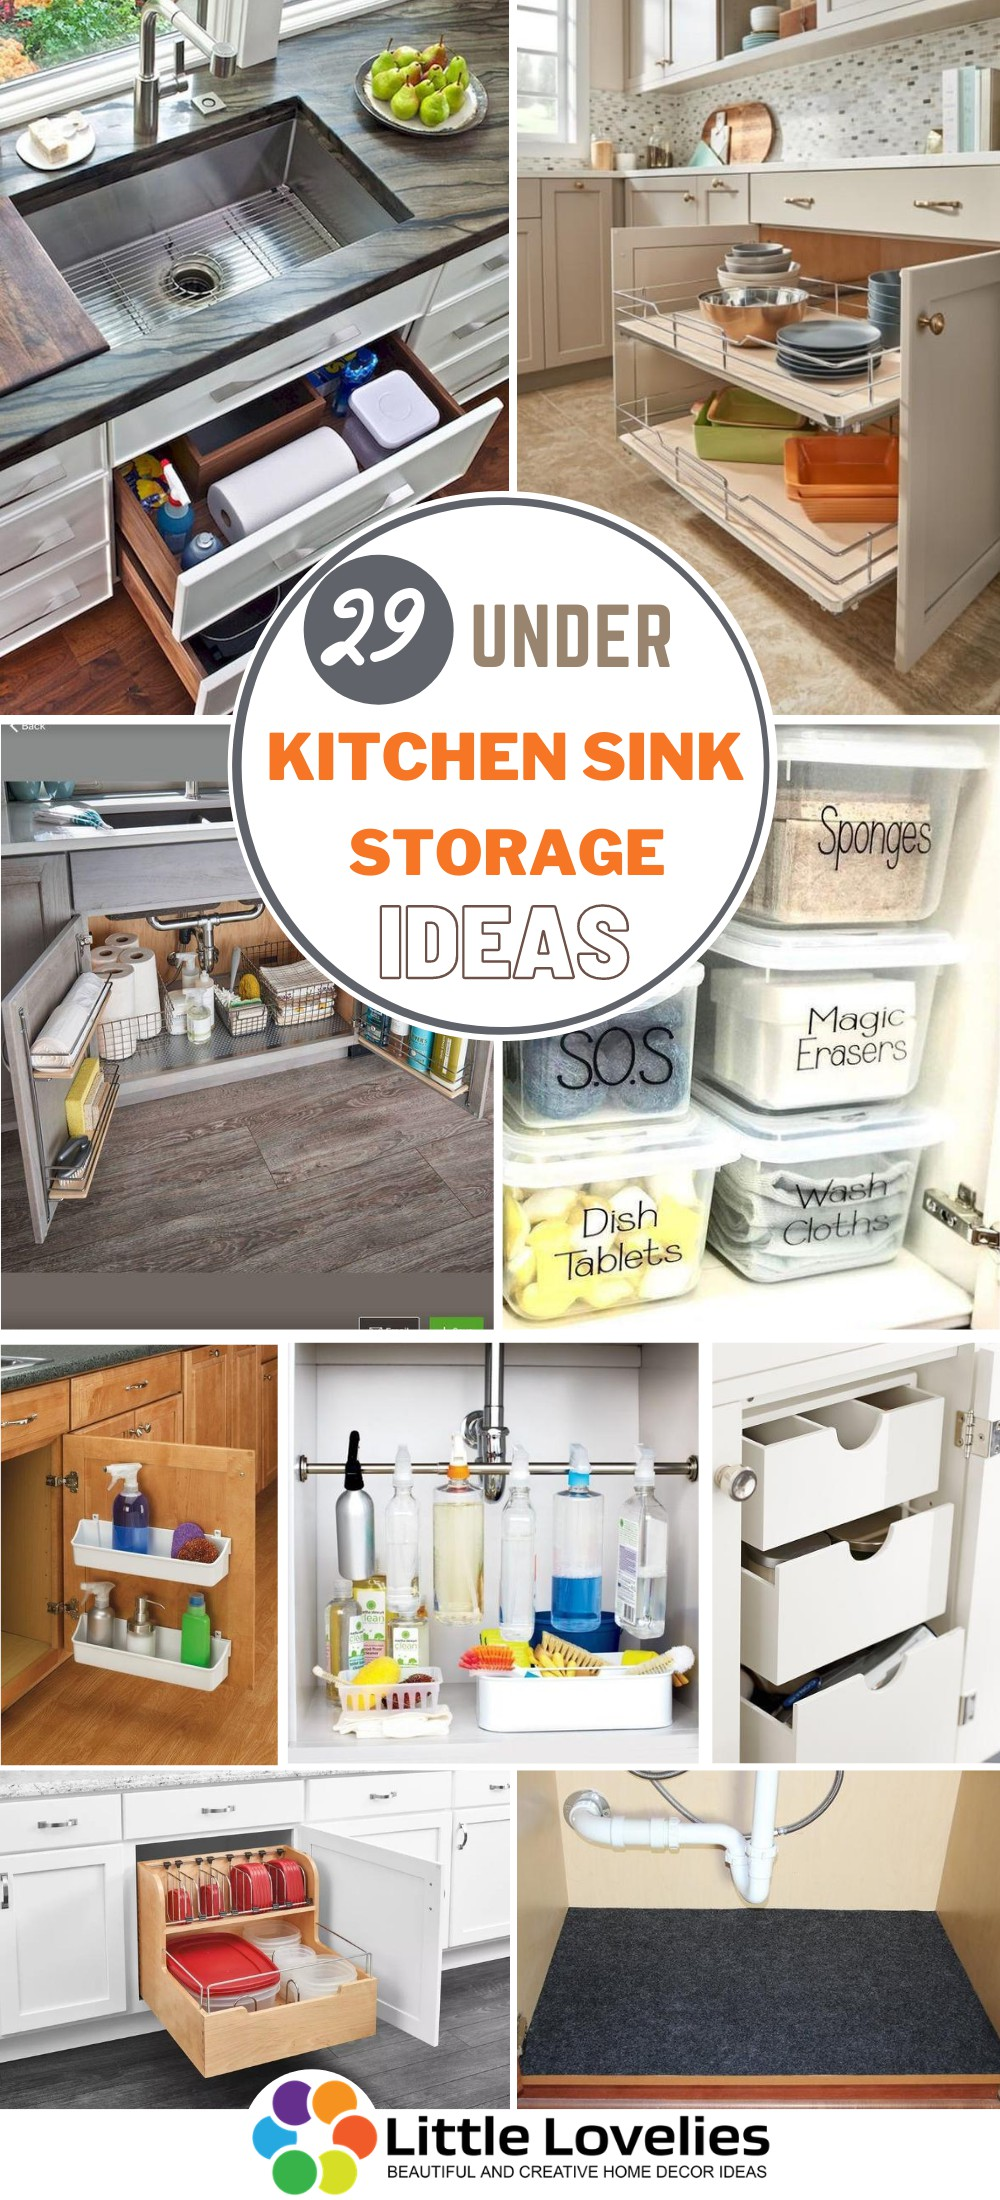 29 Under Kitchen Sink Storage Ideas To Increase Storage Space In Your Kitchen